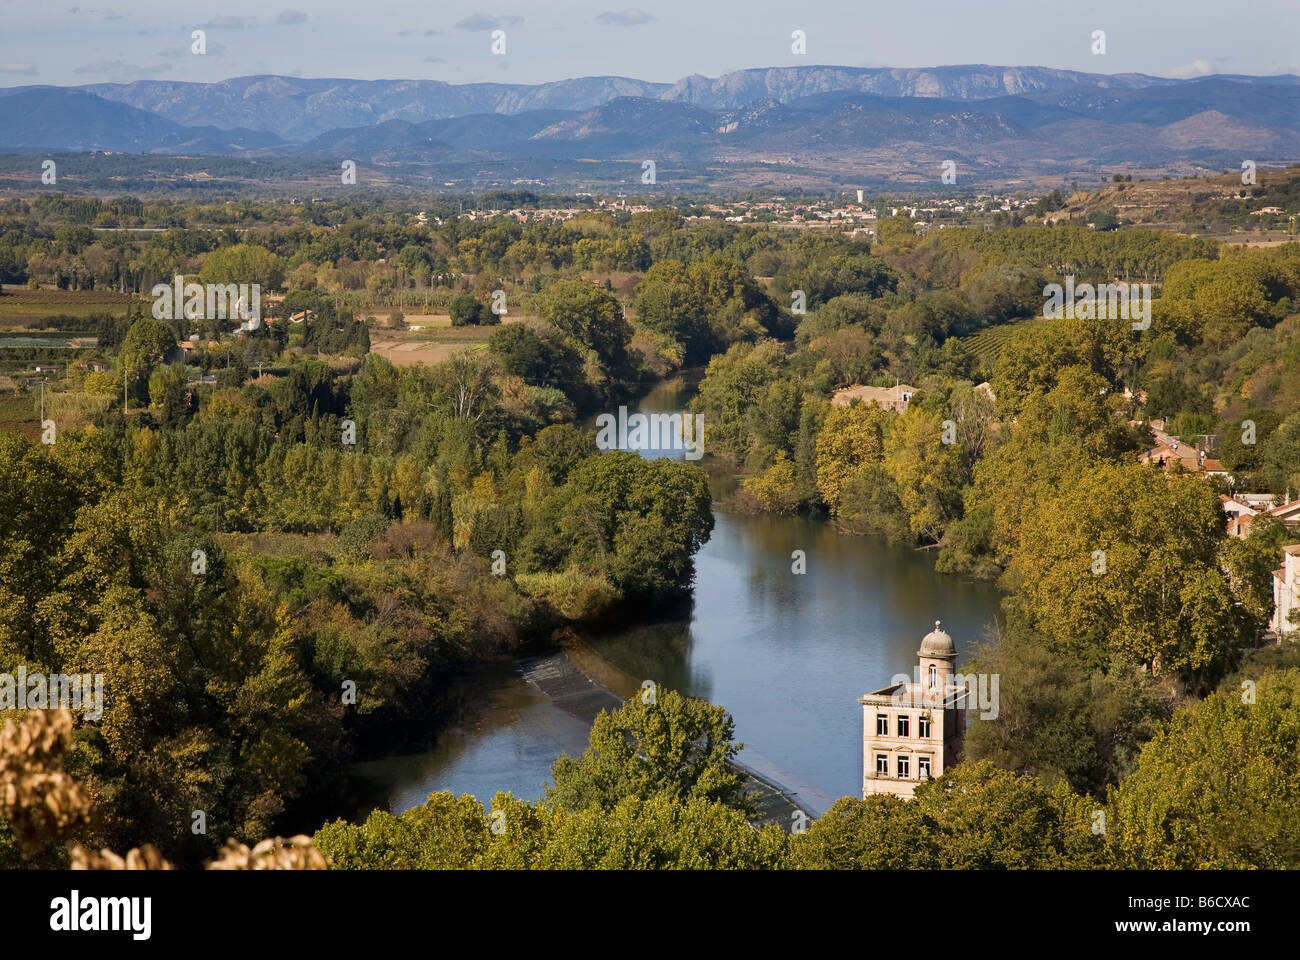 The tower of the Cordier MIll on the River Orb from St Nazaire Cathedral, Bezier, Languedoc-Roussillon, France - Stock Image